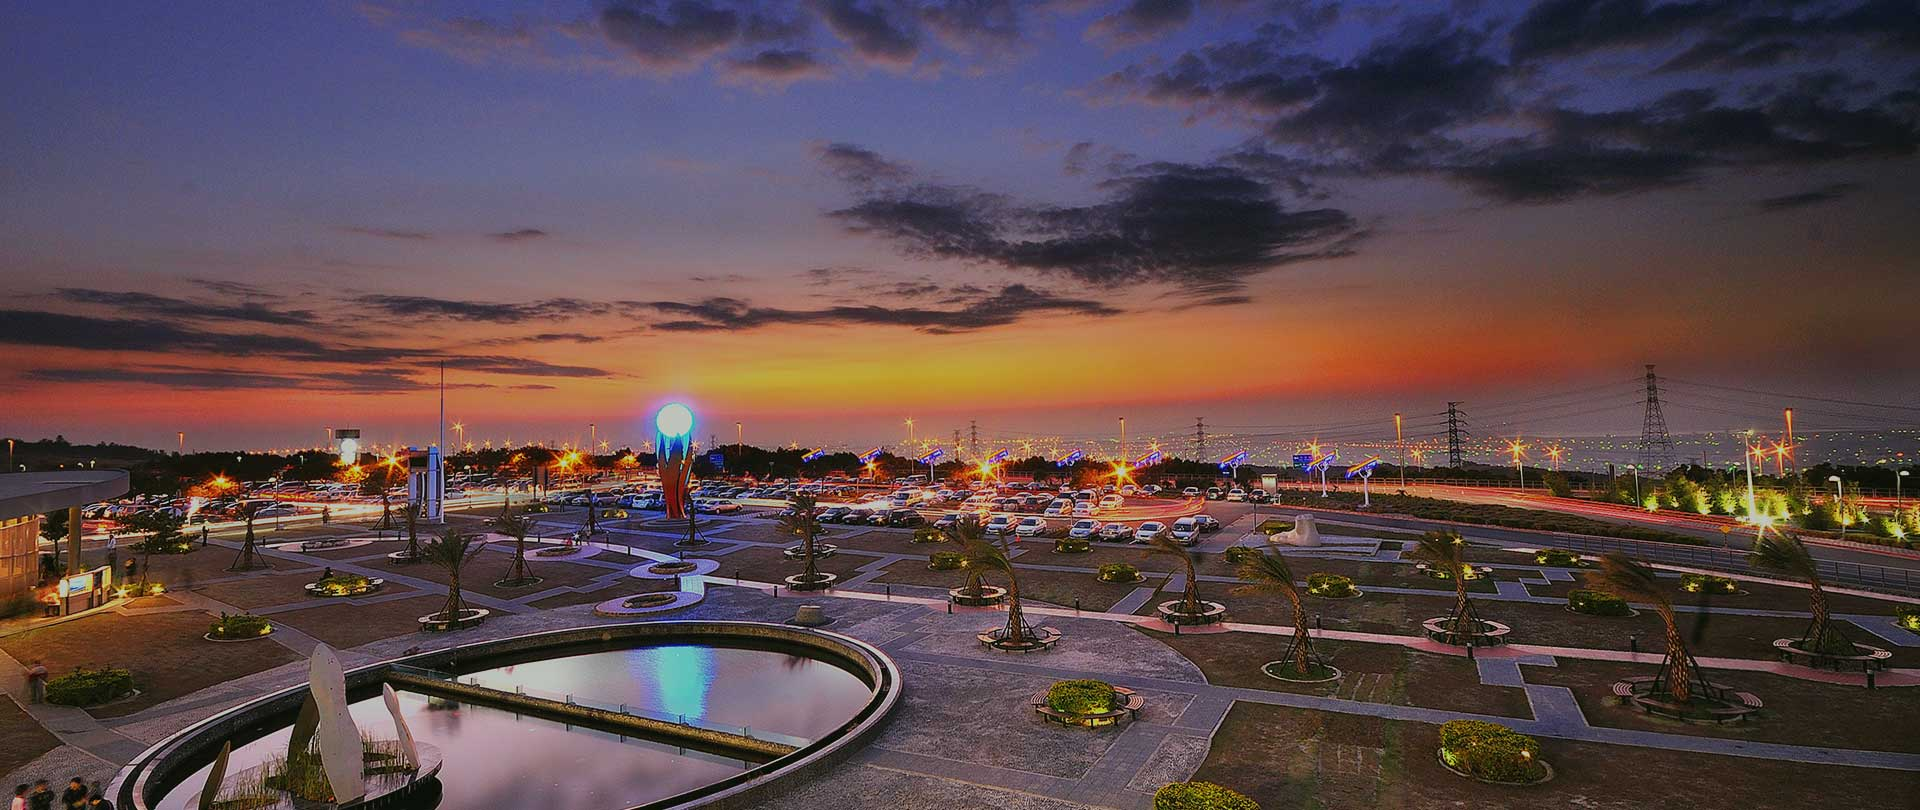 The view of attraction in Taichung